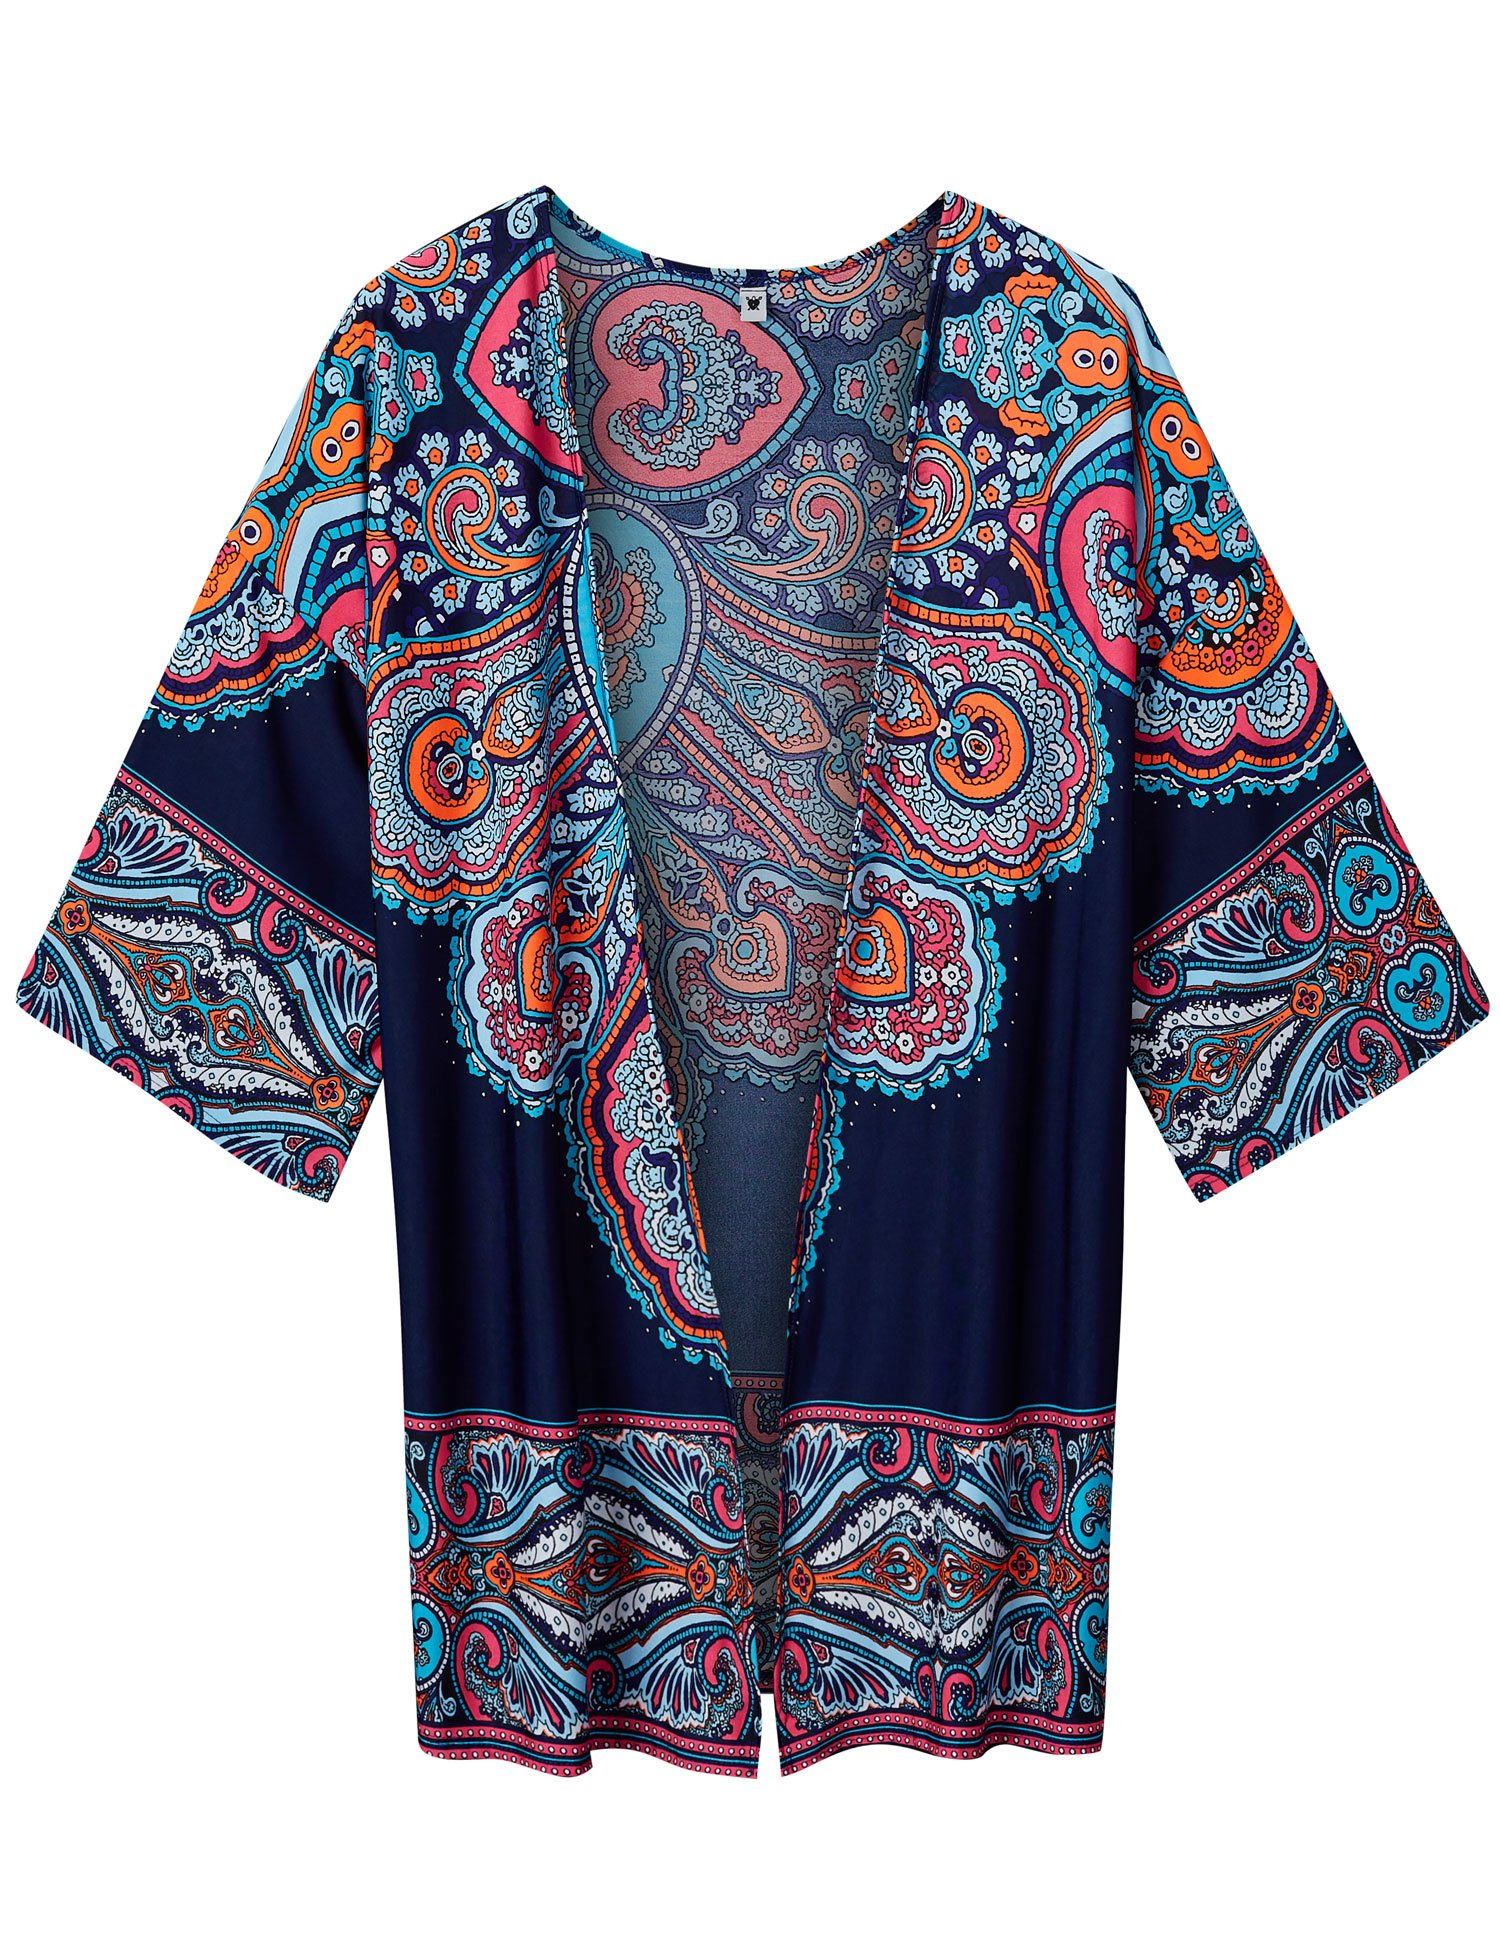 Lock and Love WT1576 Womens Printed Kimono Shawl Cardigan Top - Made in USA OS Navy_Pink